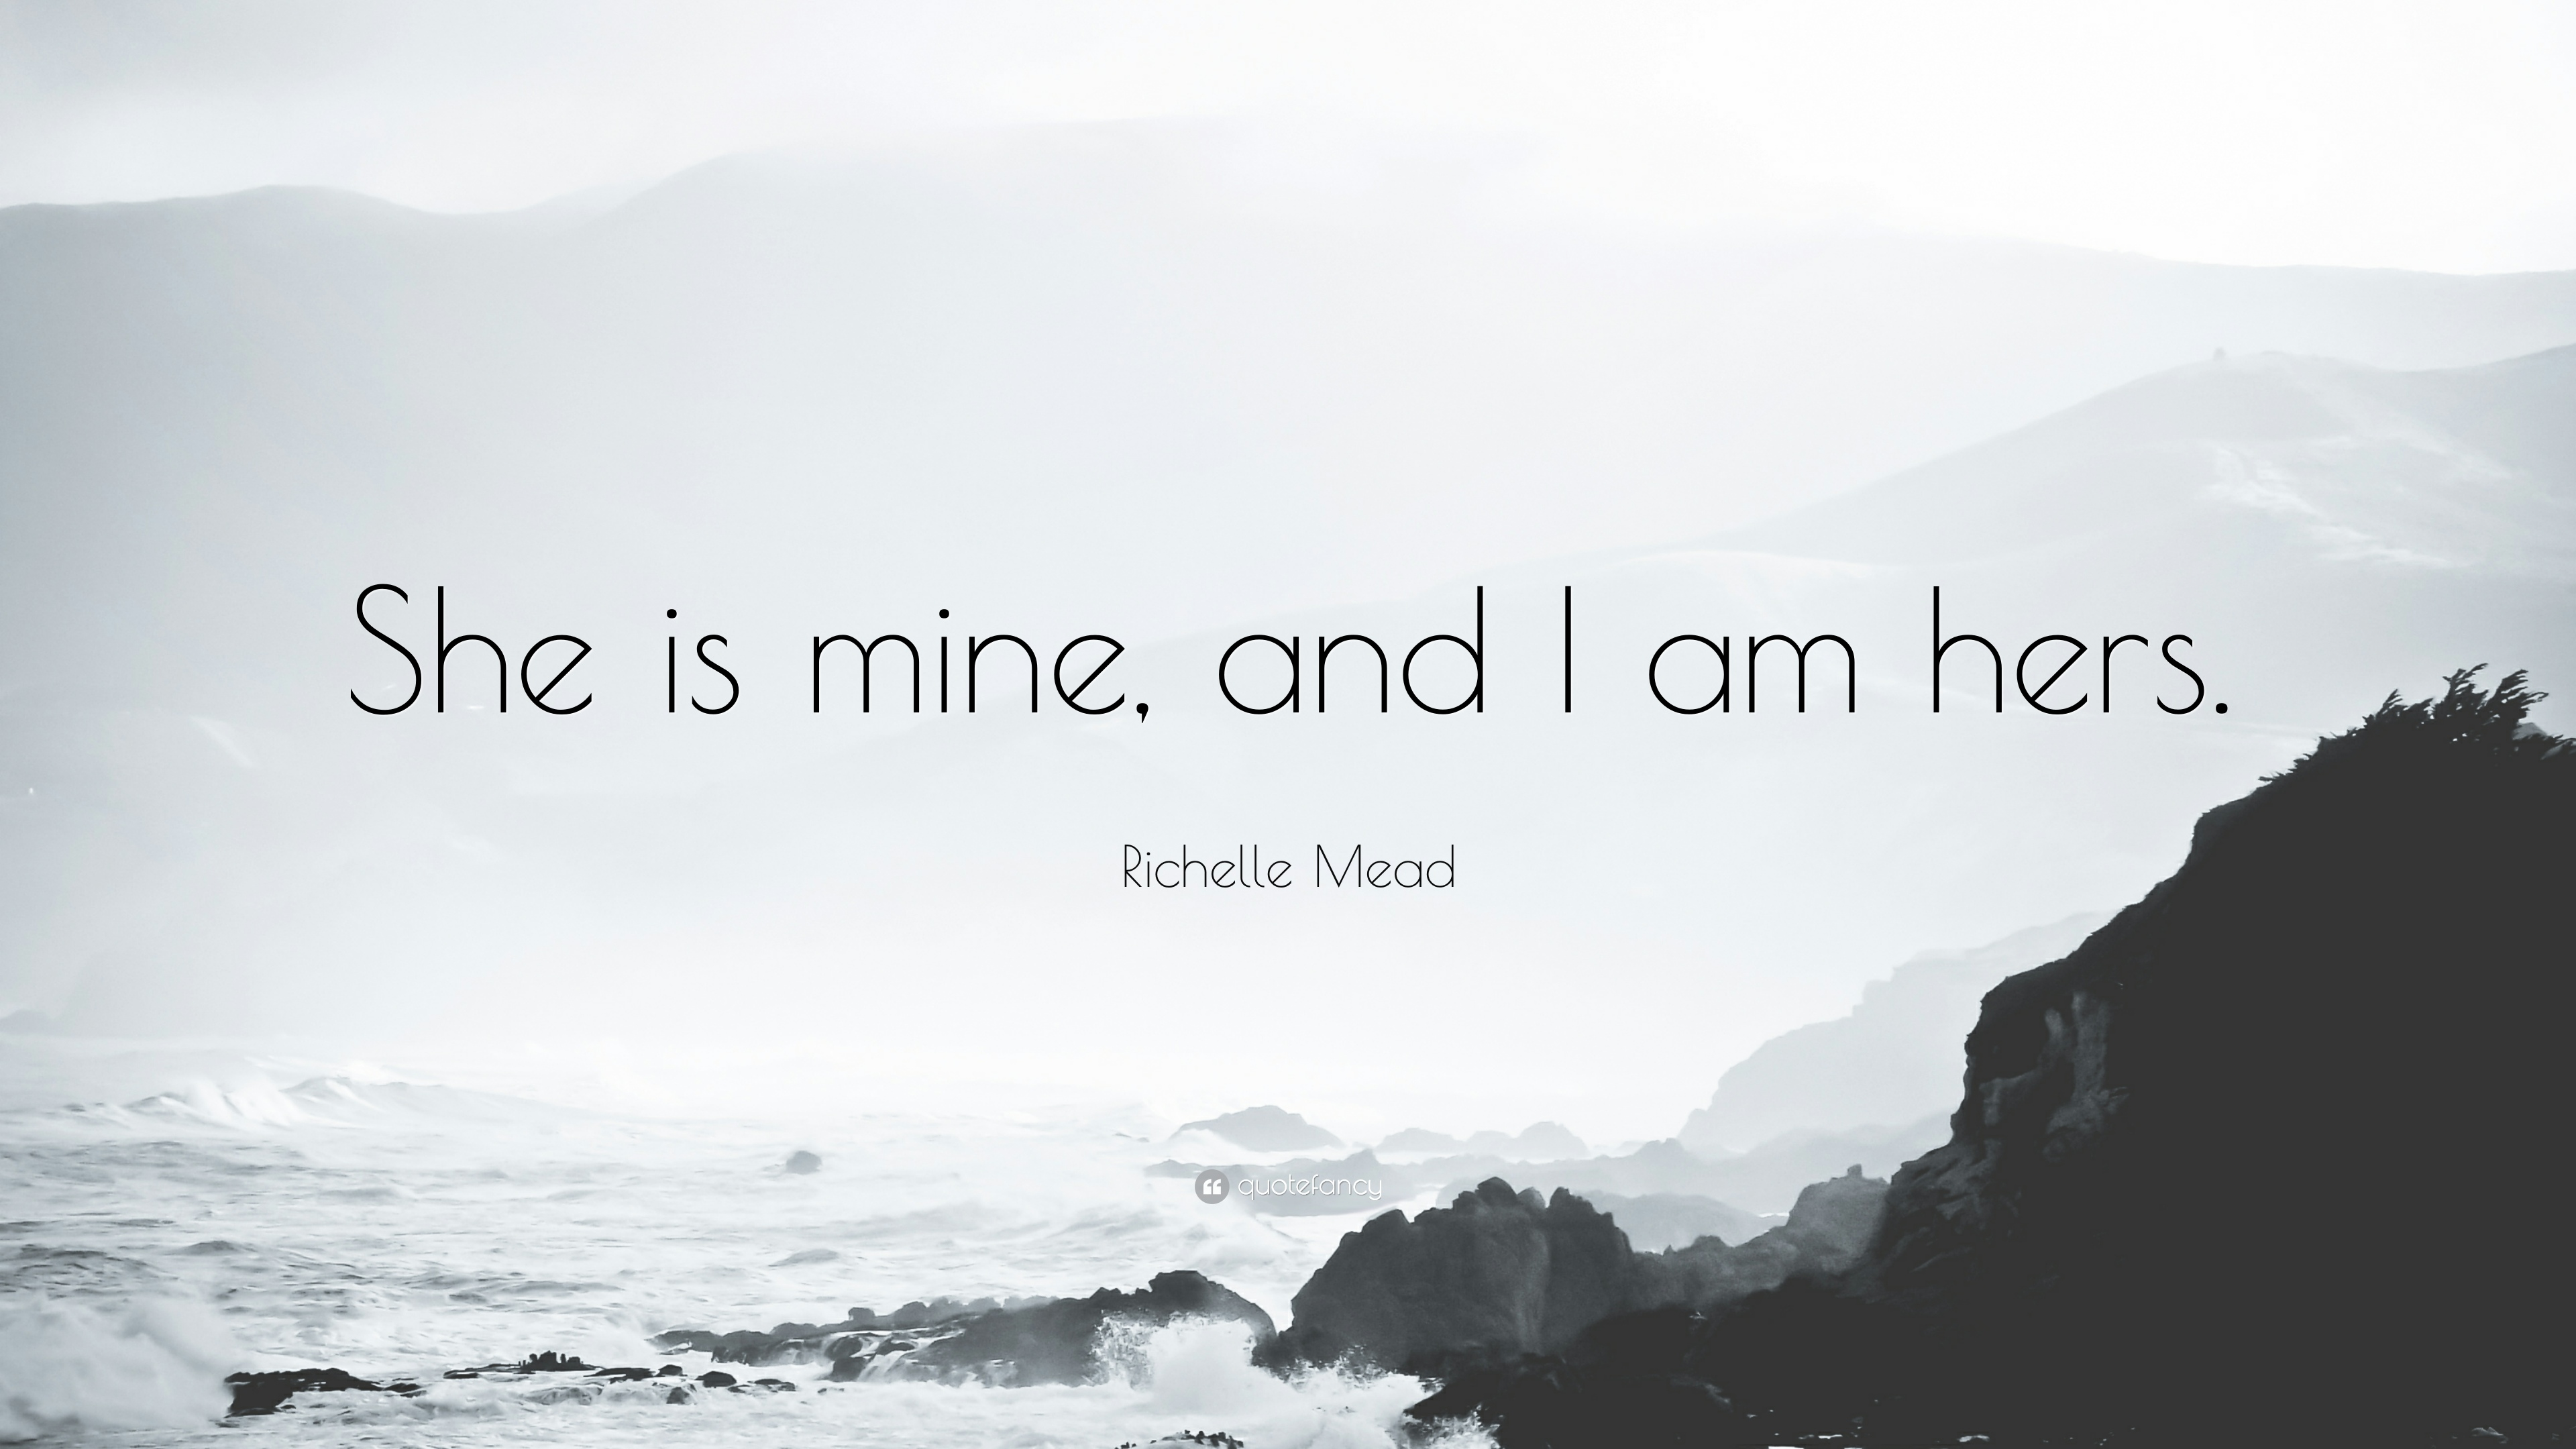 Richelle Mead Quote: She is mine, and I am hers. (11